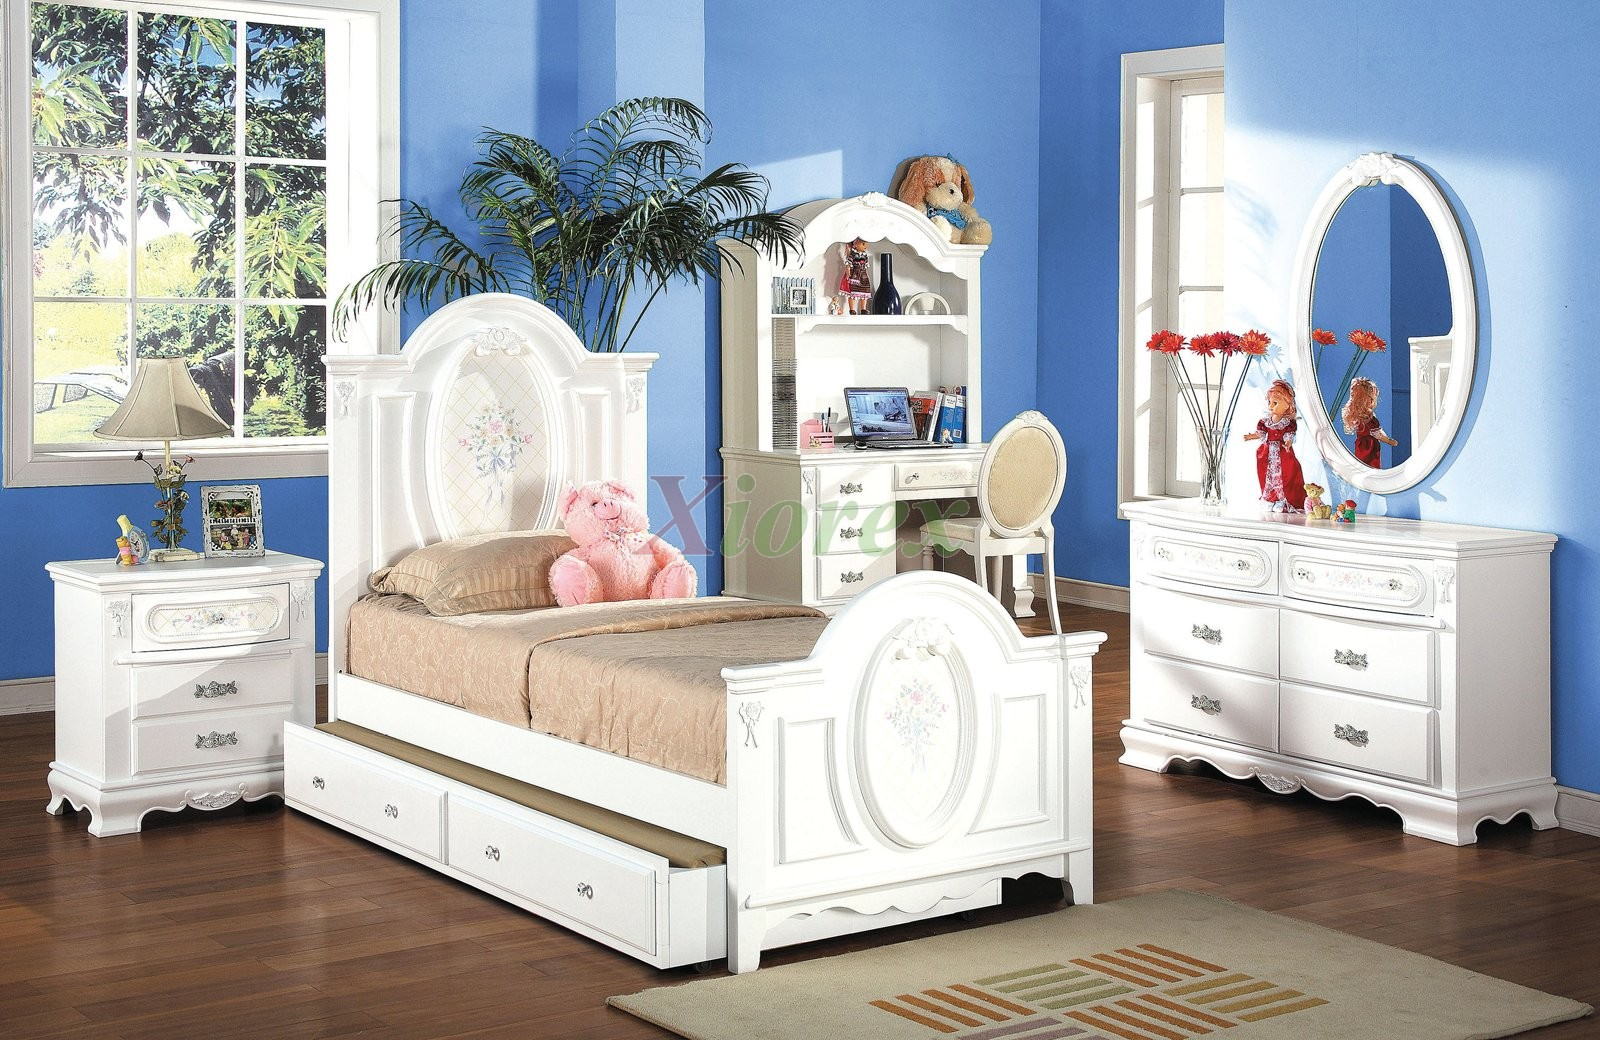 Beautiful Kids Bedroom Furniture Set with Trundle Bed and Hutch 174 | Xiorex. Dresser youth bedroom furniture sets